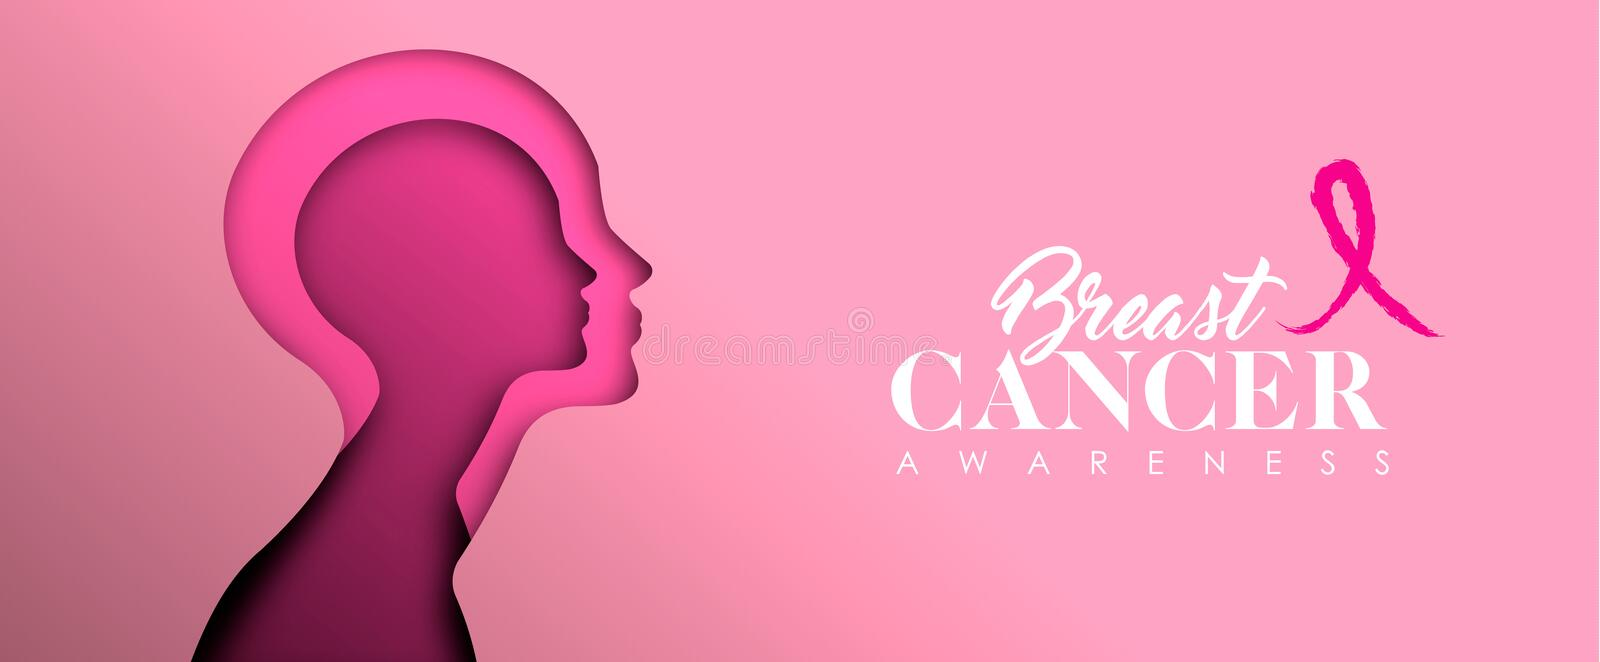 Breast Cancer Awareness cutout woman face banner. Breast Cancer Awareness web banner illustration for support and health care. Pink paper cut woman face royalty free illustration